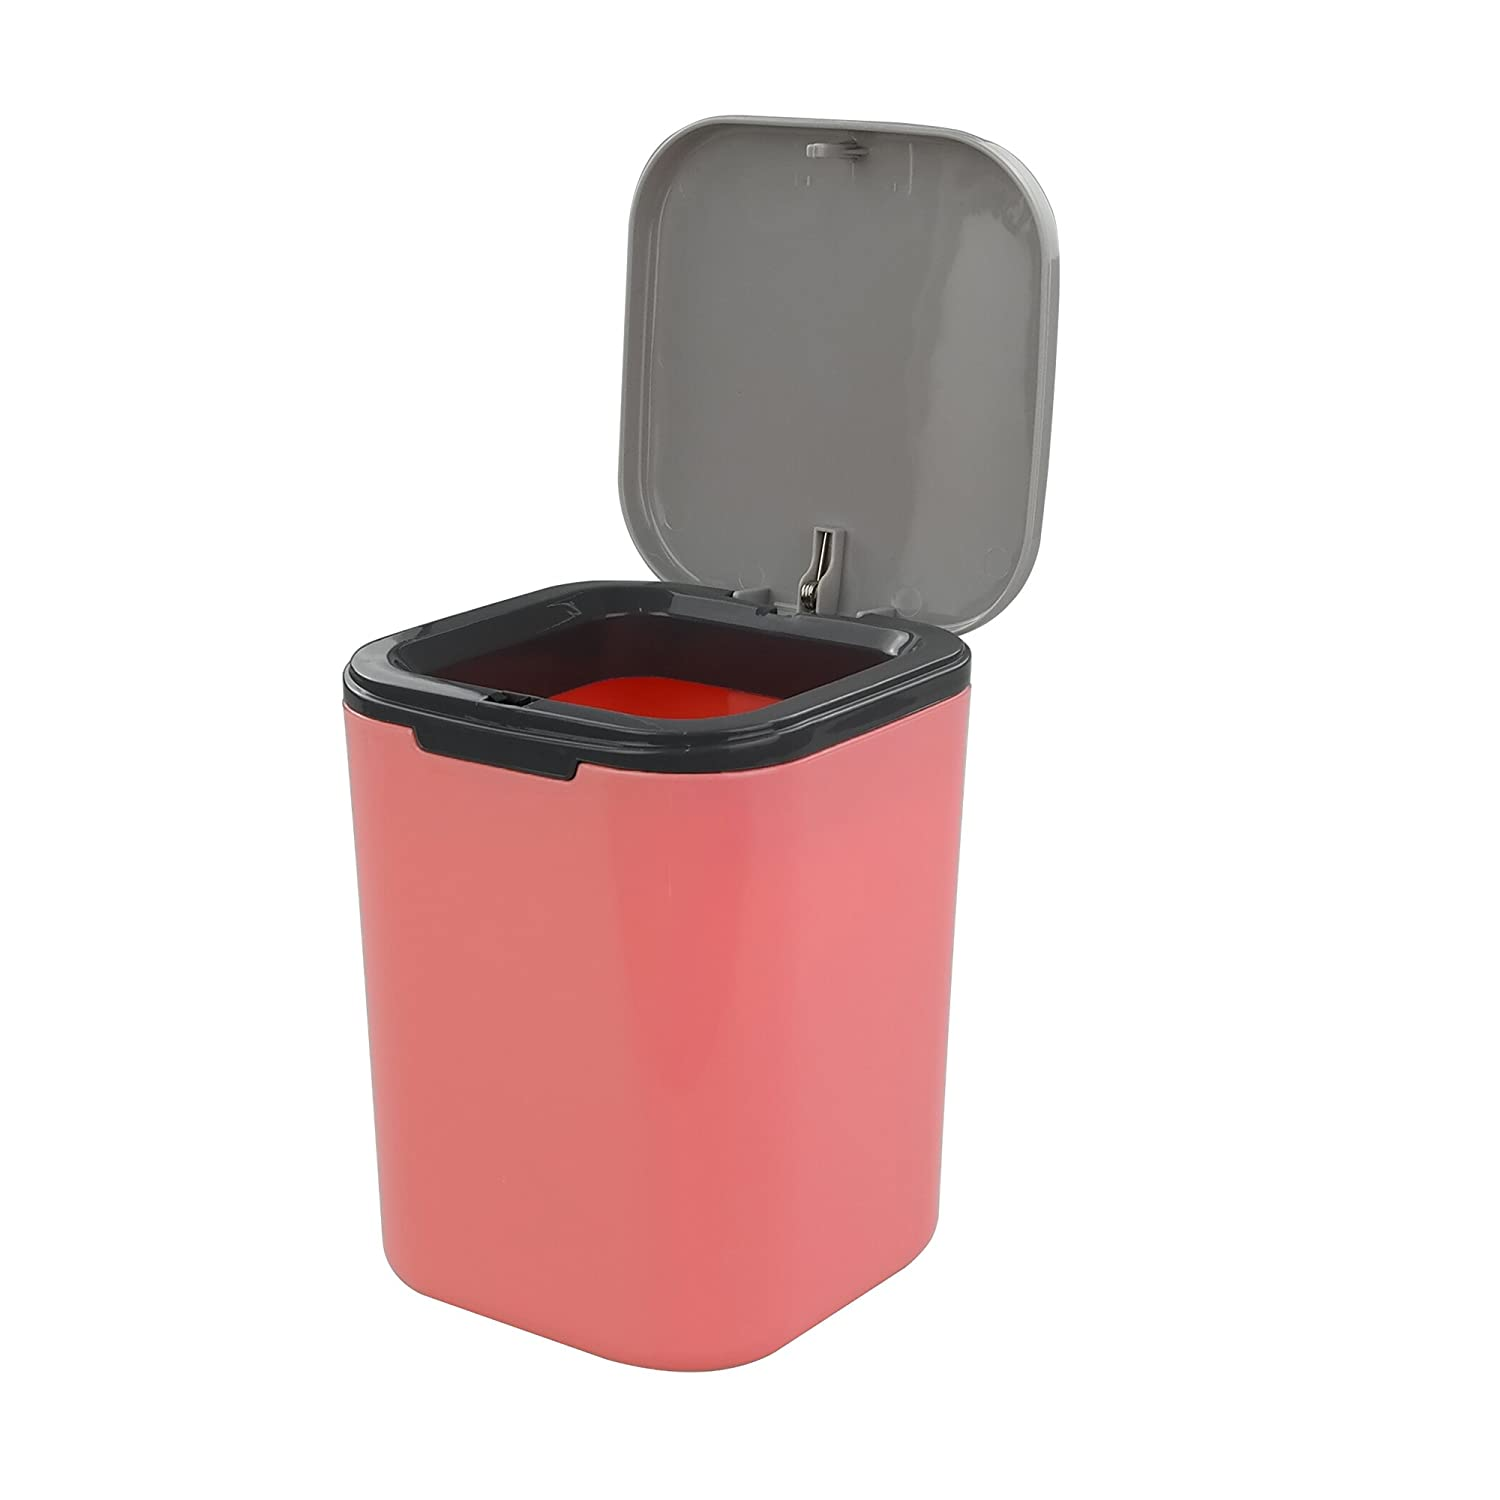 Hommp 1/2 Gallon Tiny Countertop Trash Can, Push-Button (Pink)